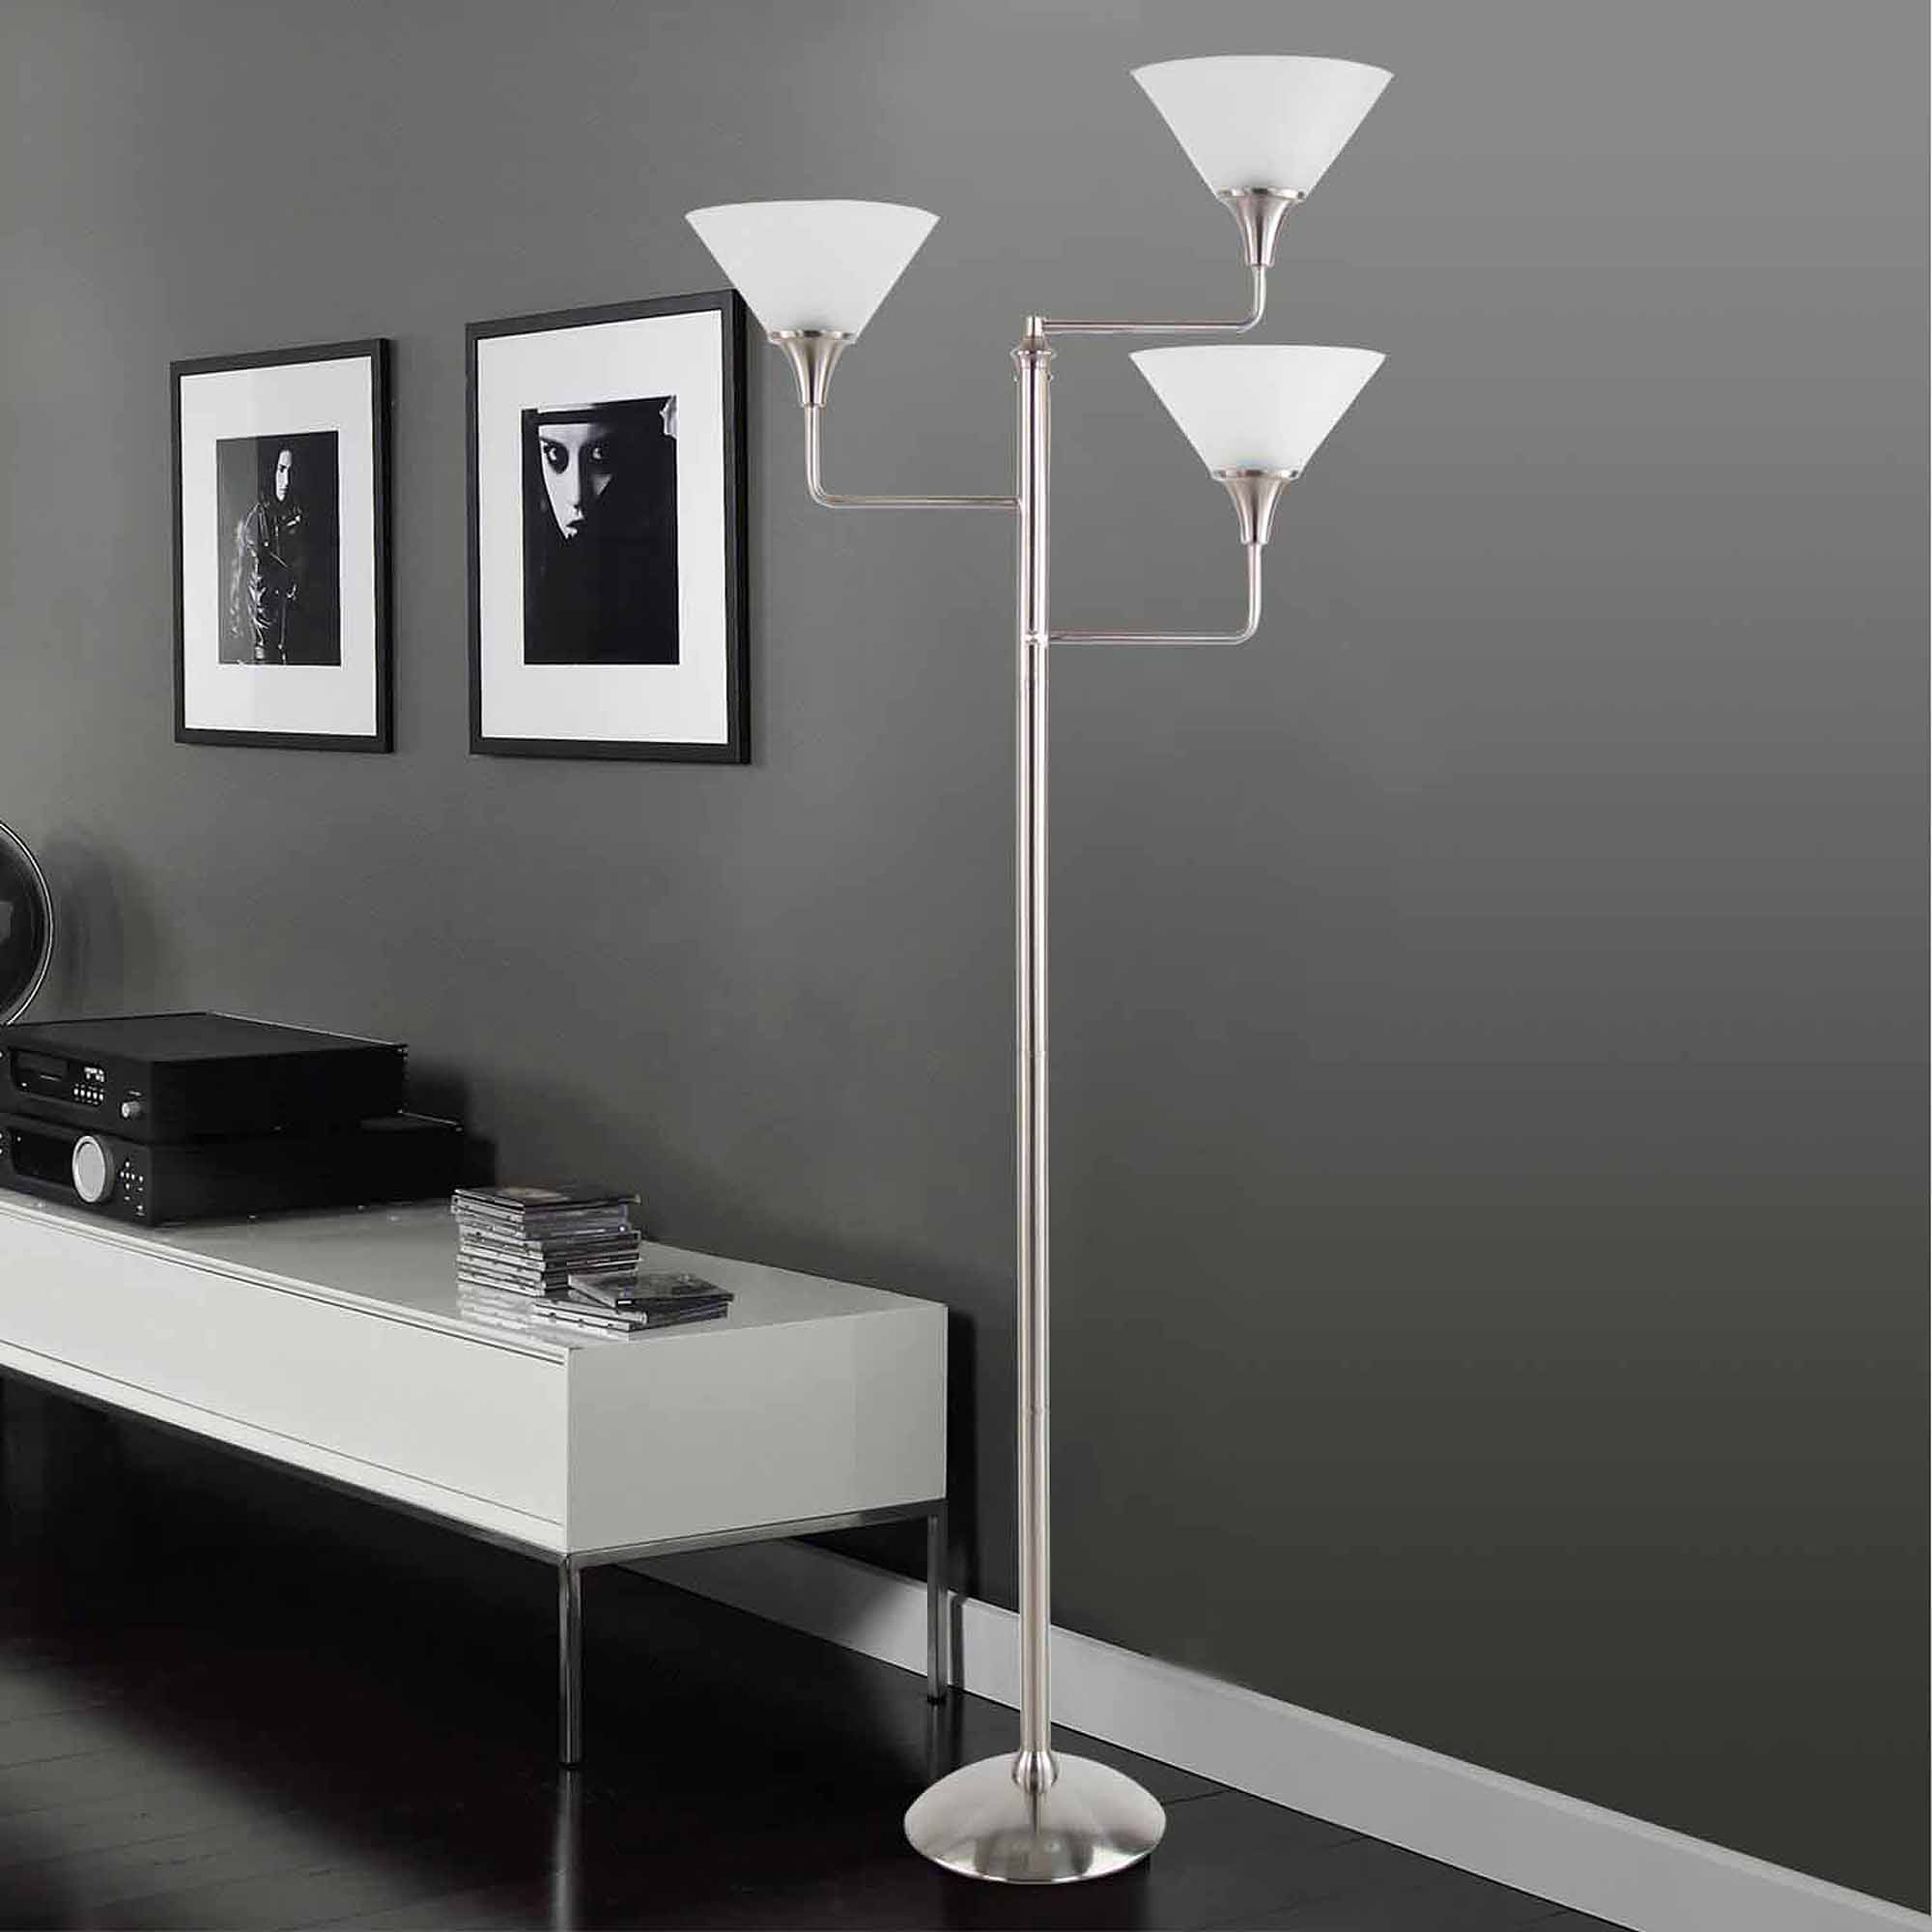 Legacy Home Collection 3-Head Floor Lamp, Brushed Nickel with White Shades by Legacy Home LTD